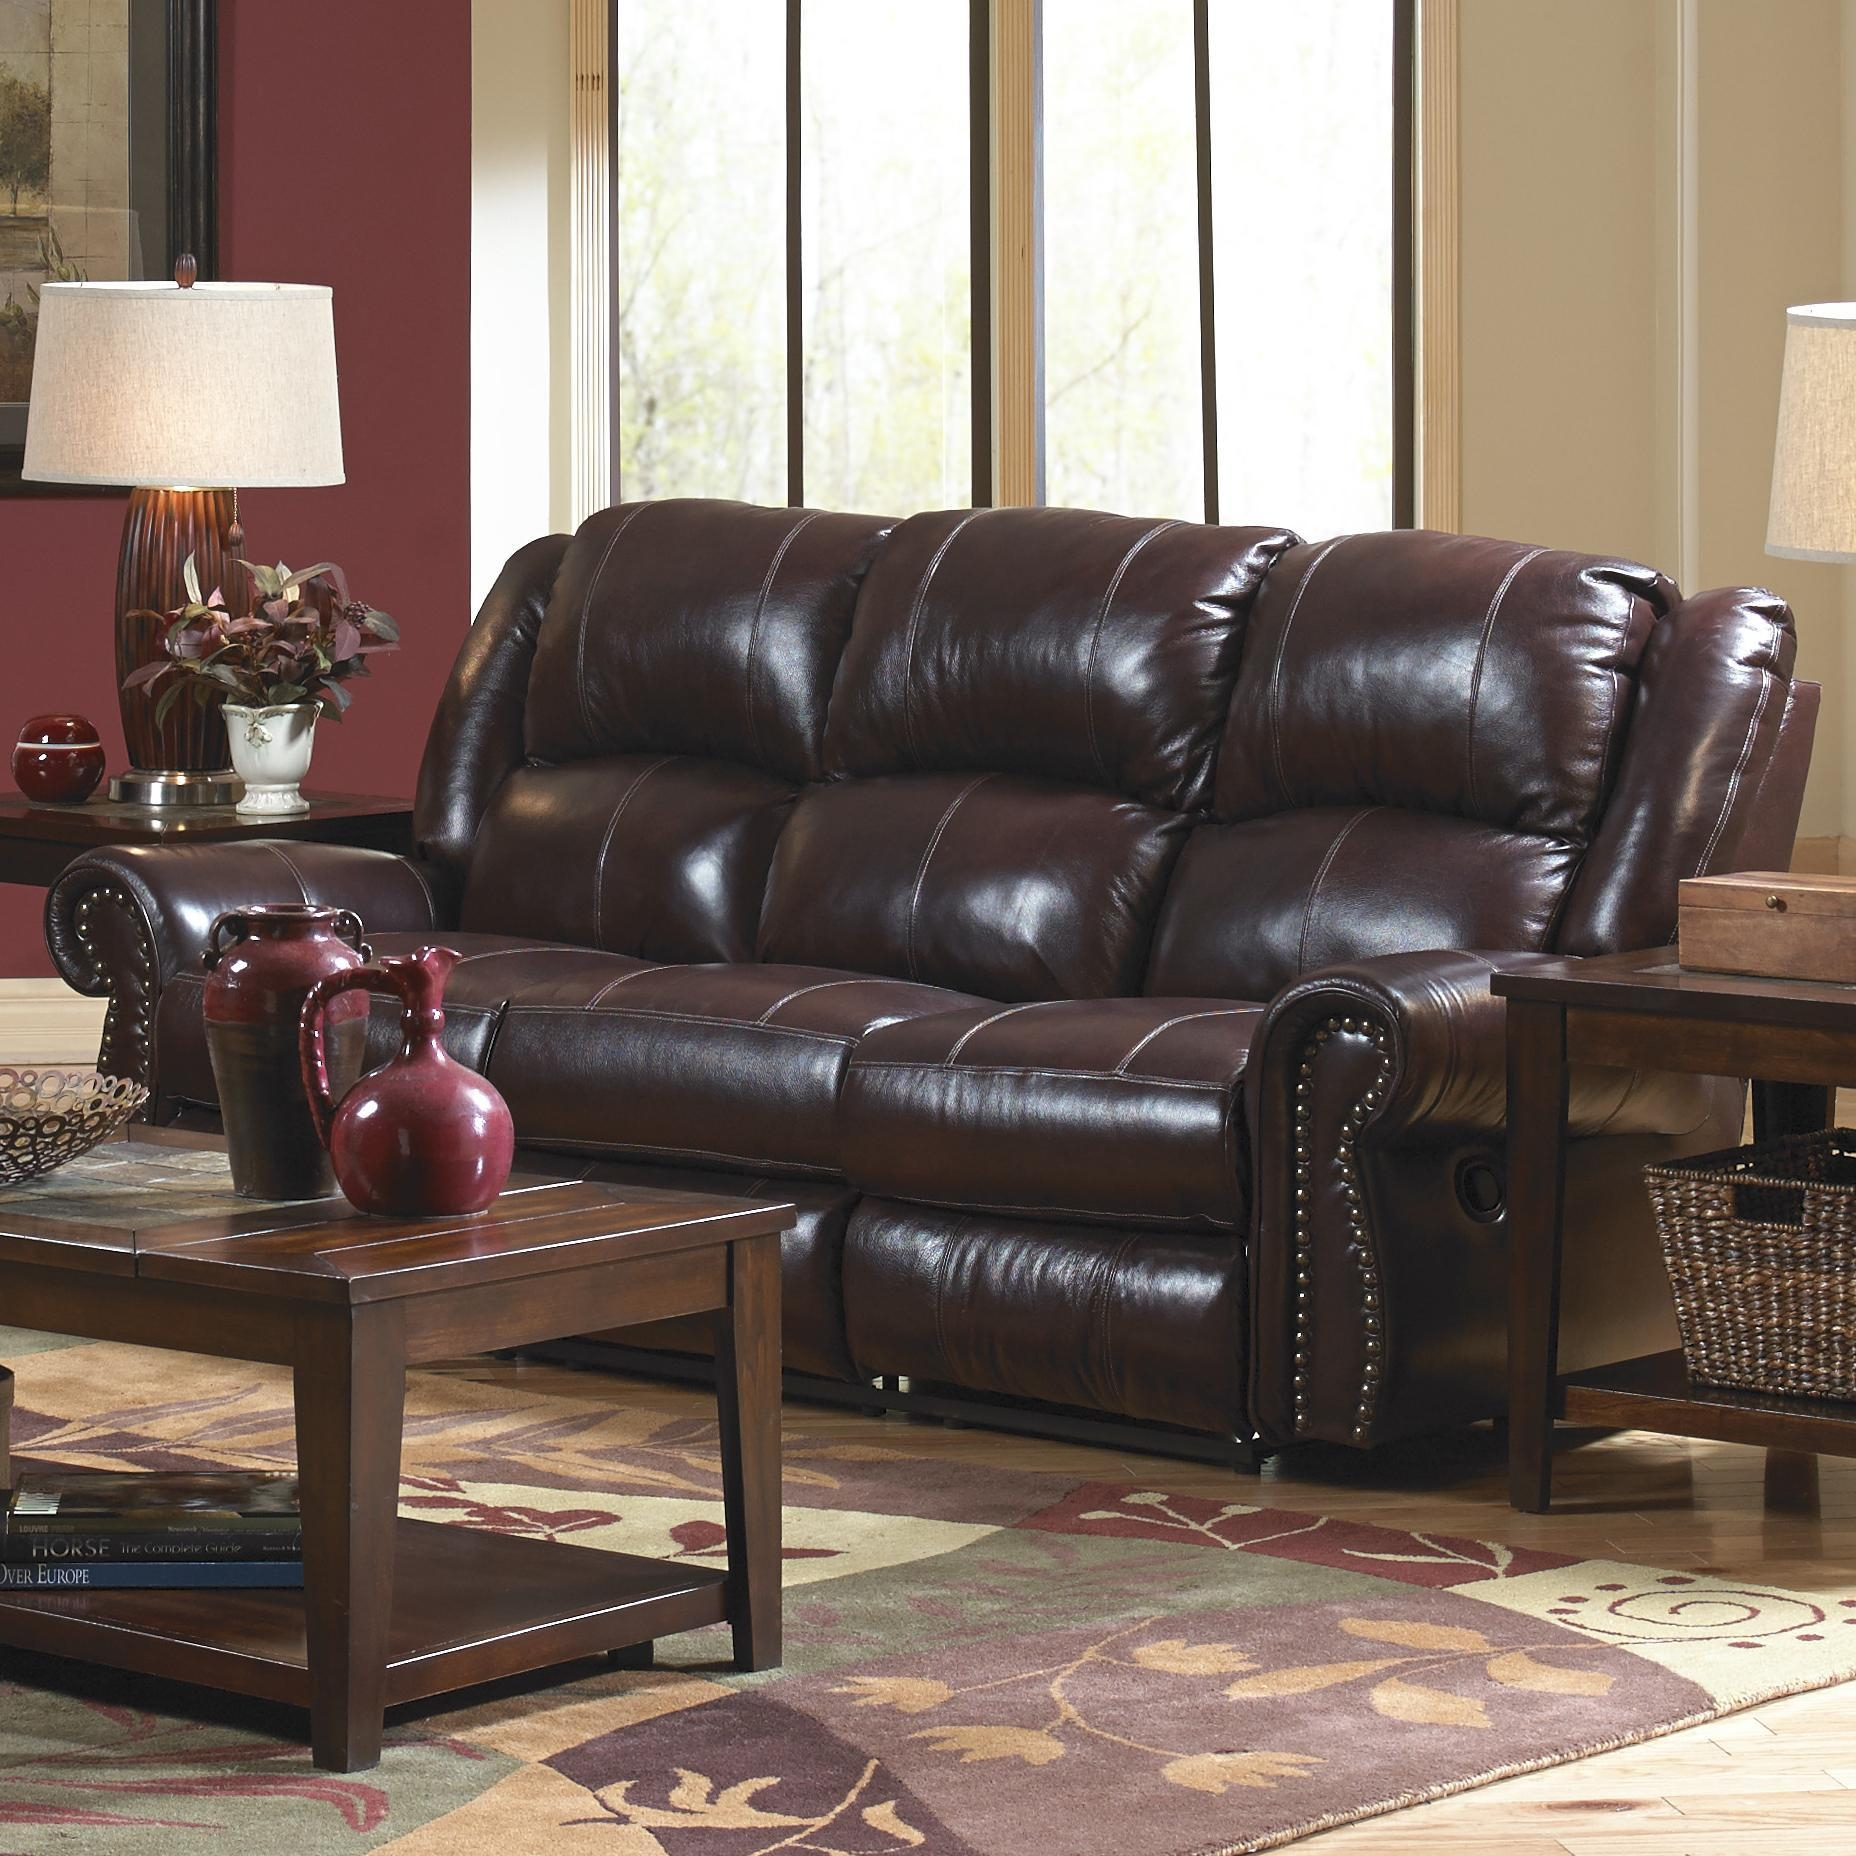 Catnapper Livingston Power Reclining Sofa With Drop Down Table And Within Catnapper Reclining Sofas (View 9 of 20)